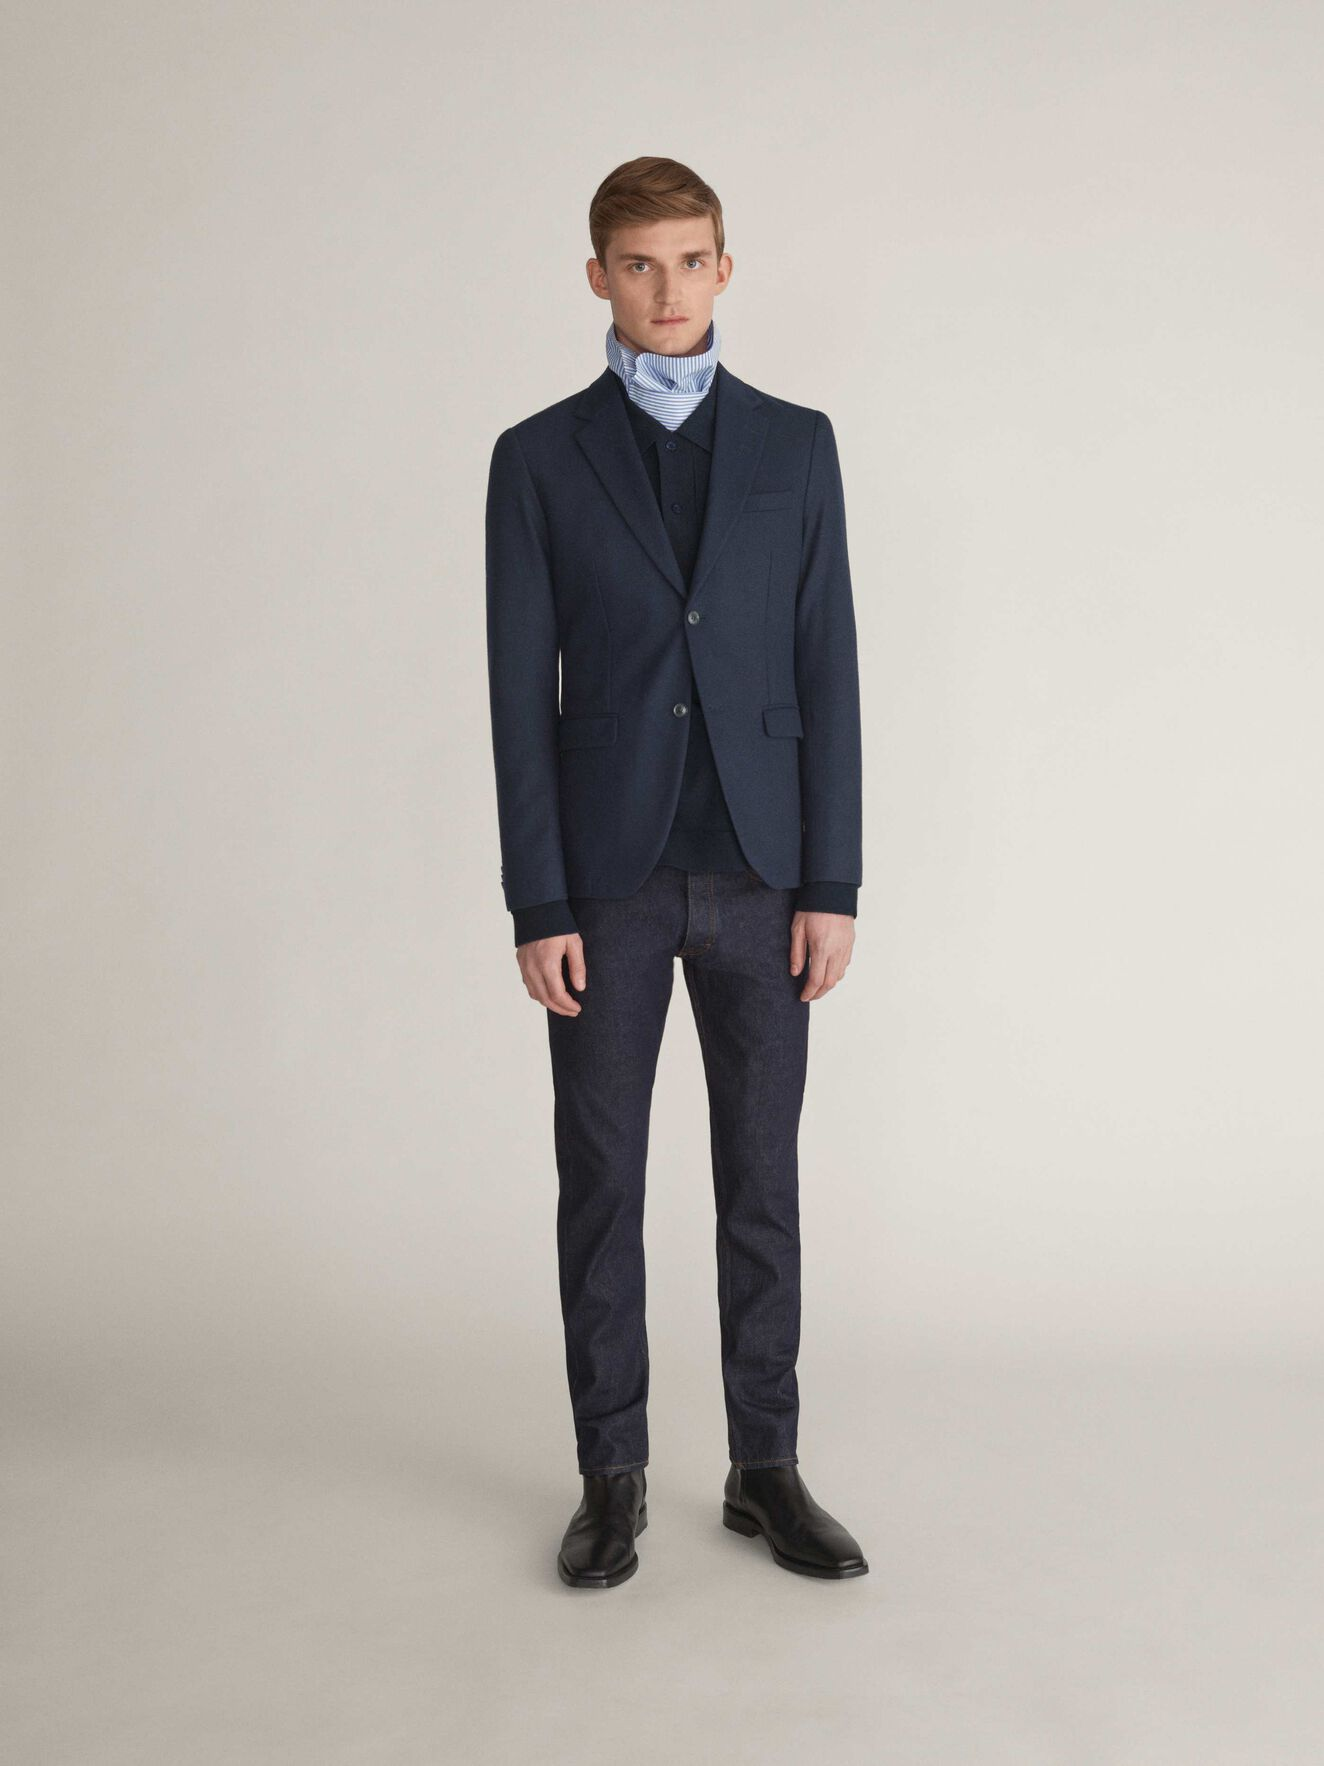 Jamonte Hl Blazer in Dusty Navy from Tiger of Sweden